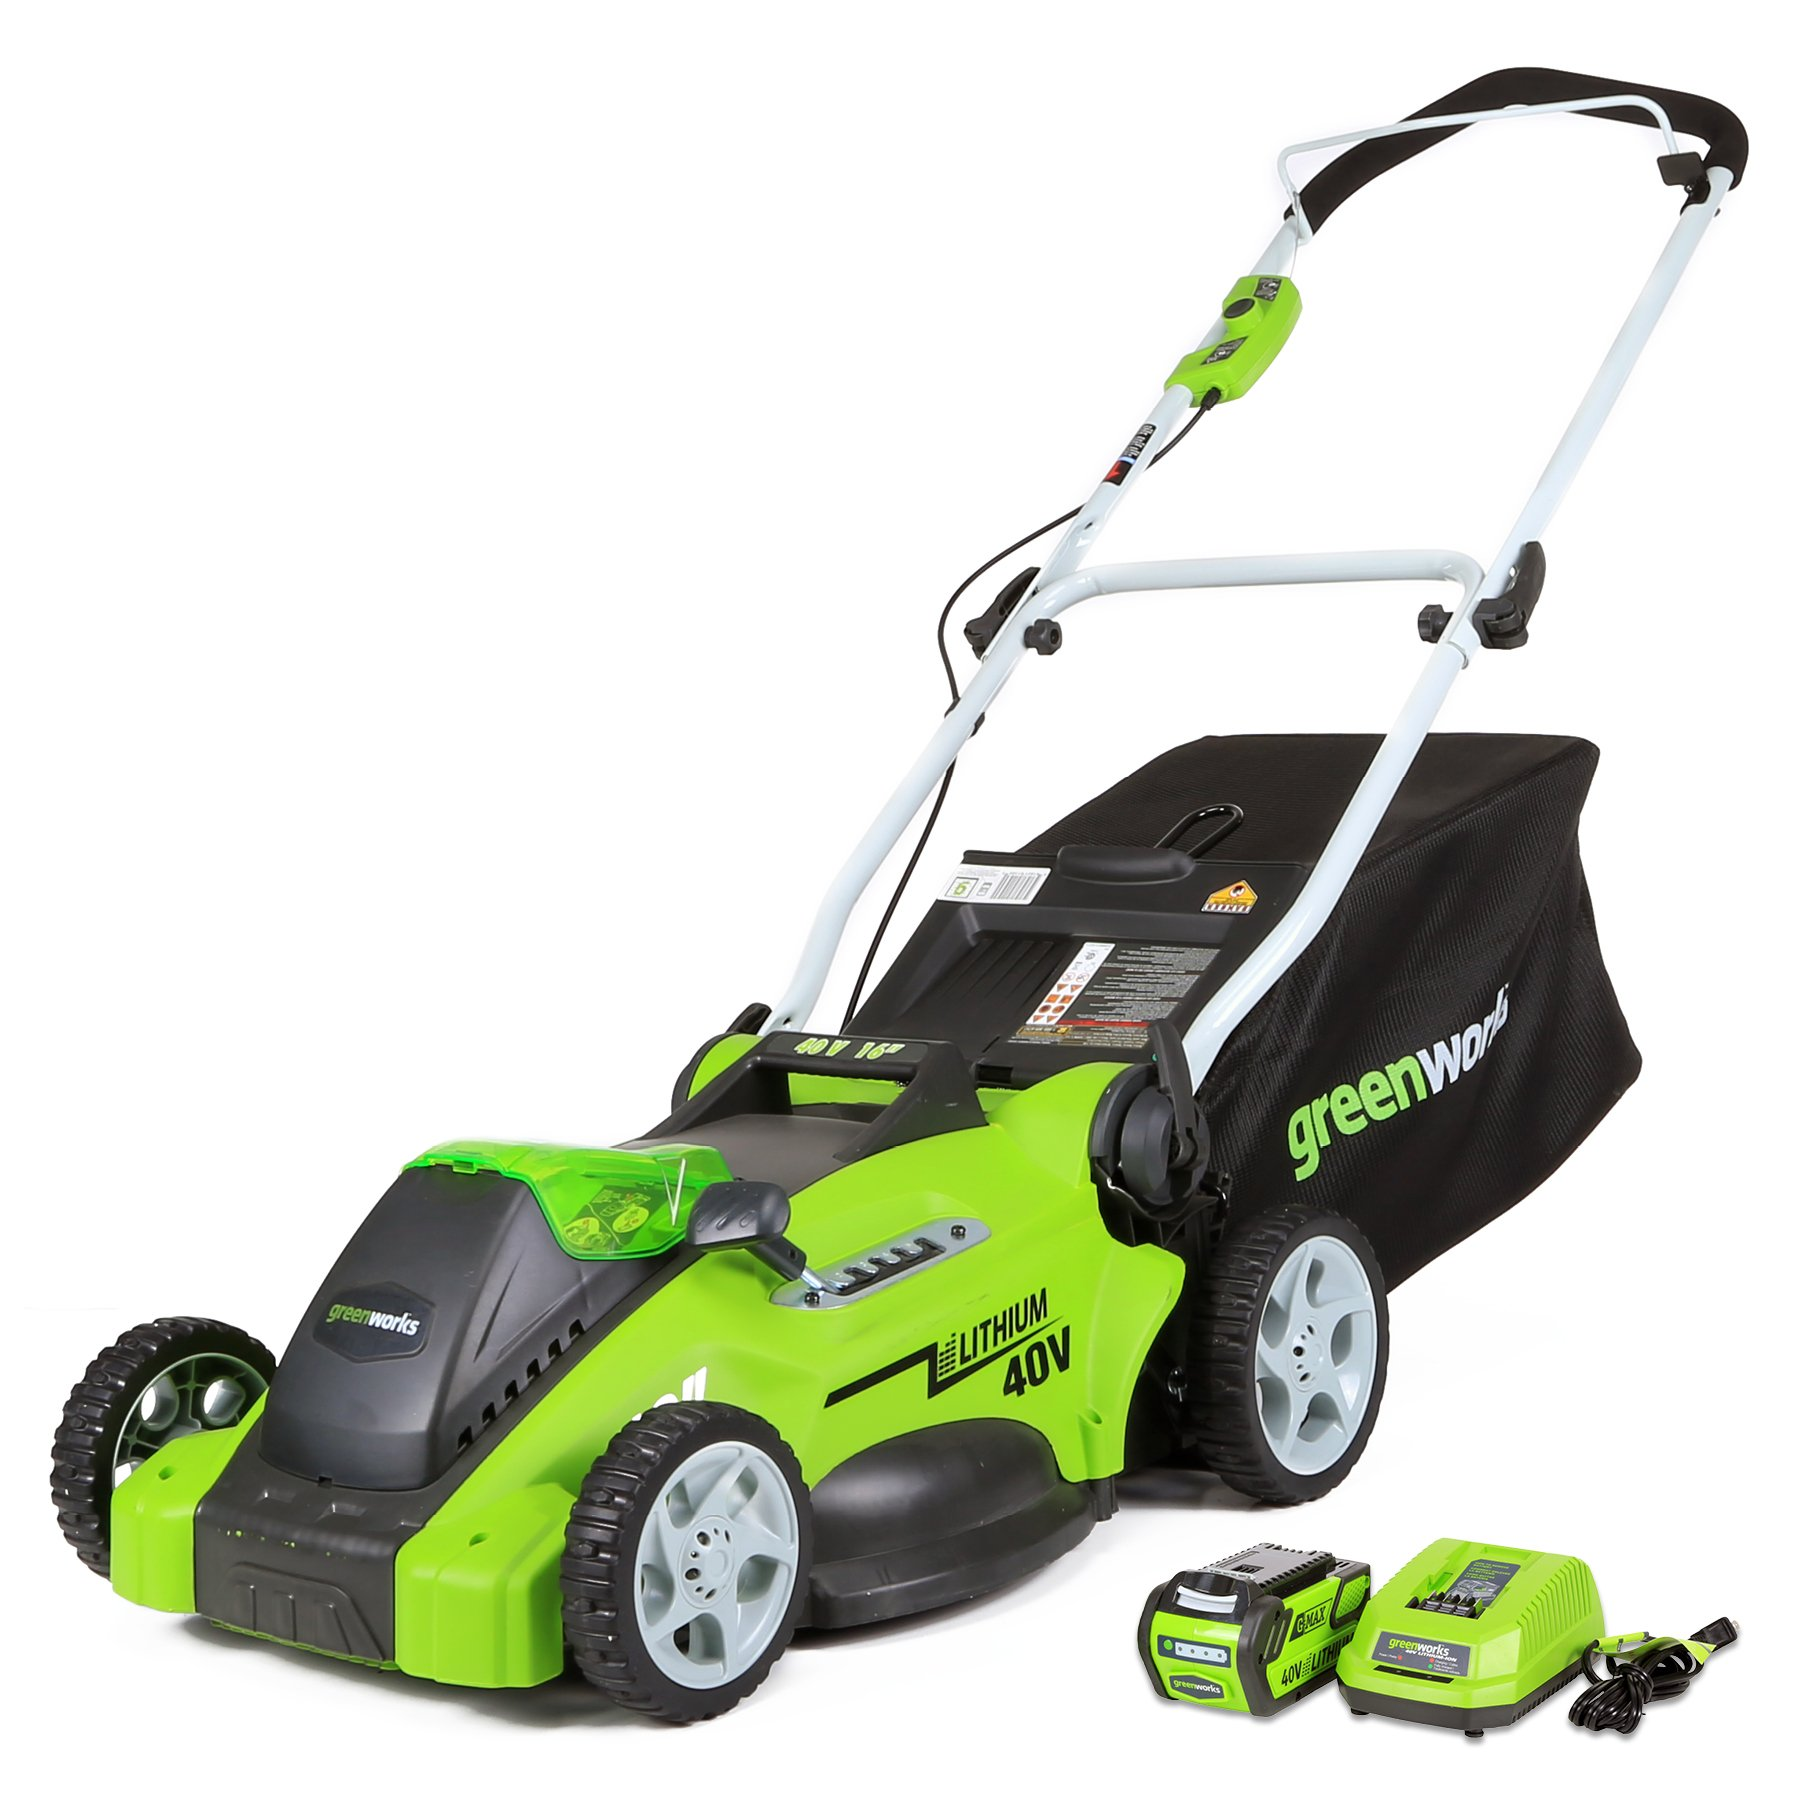 Greenworks 16-Inch 40V Cordless Lawn Mower, 4.0 AH Battery Included 25322 by Greenworks